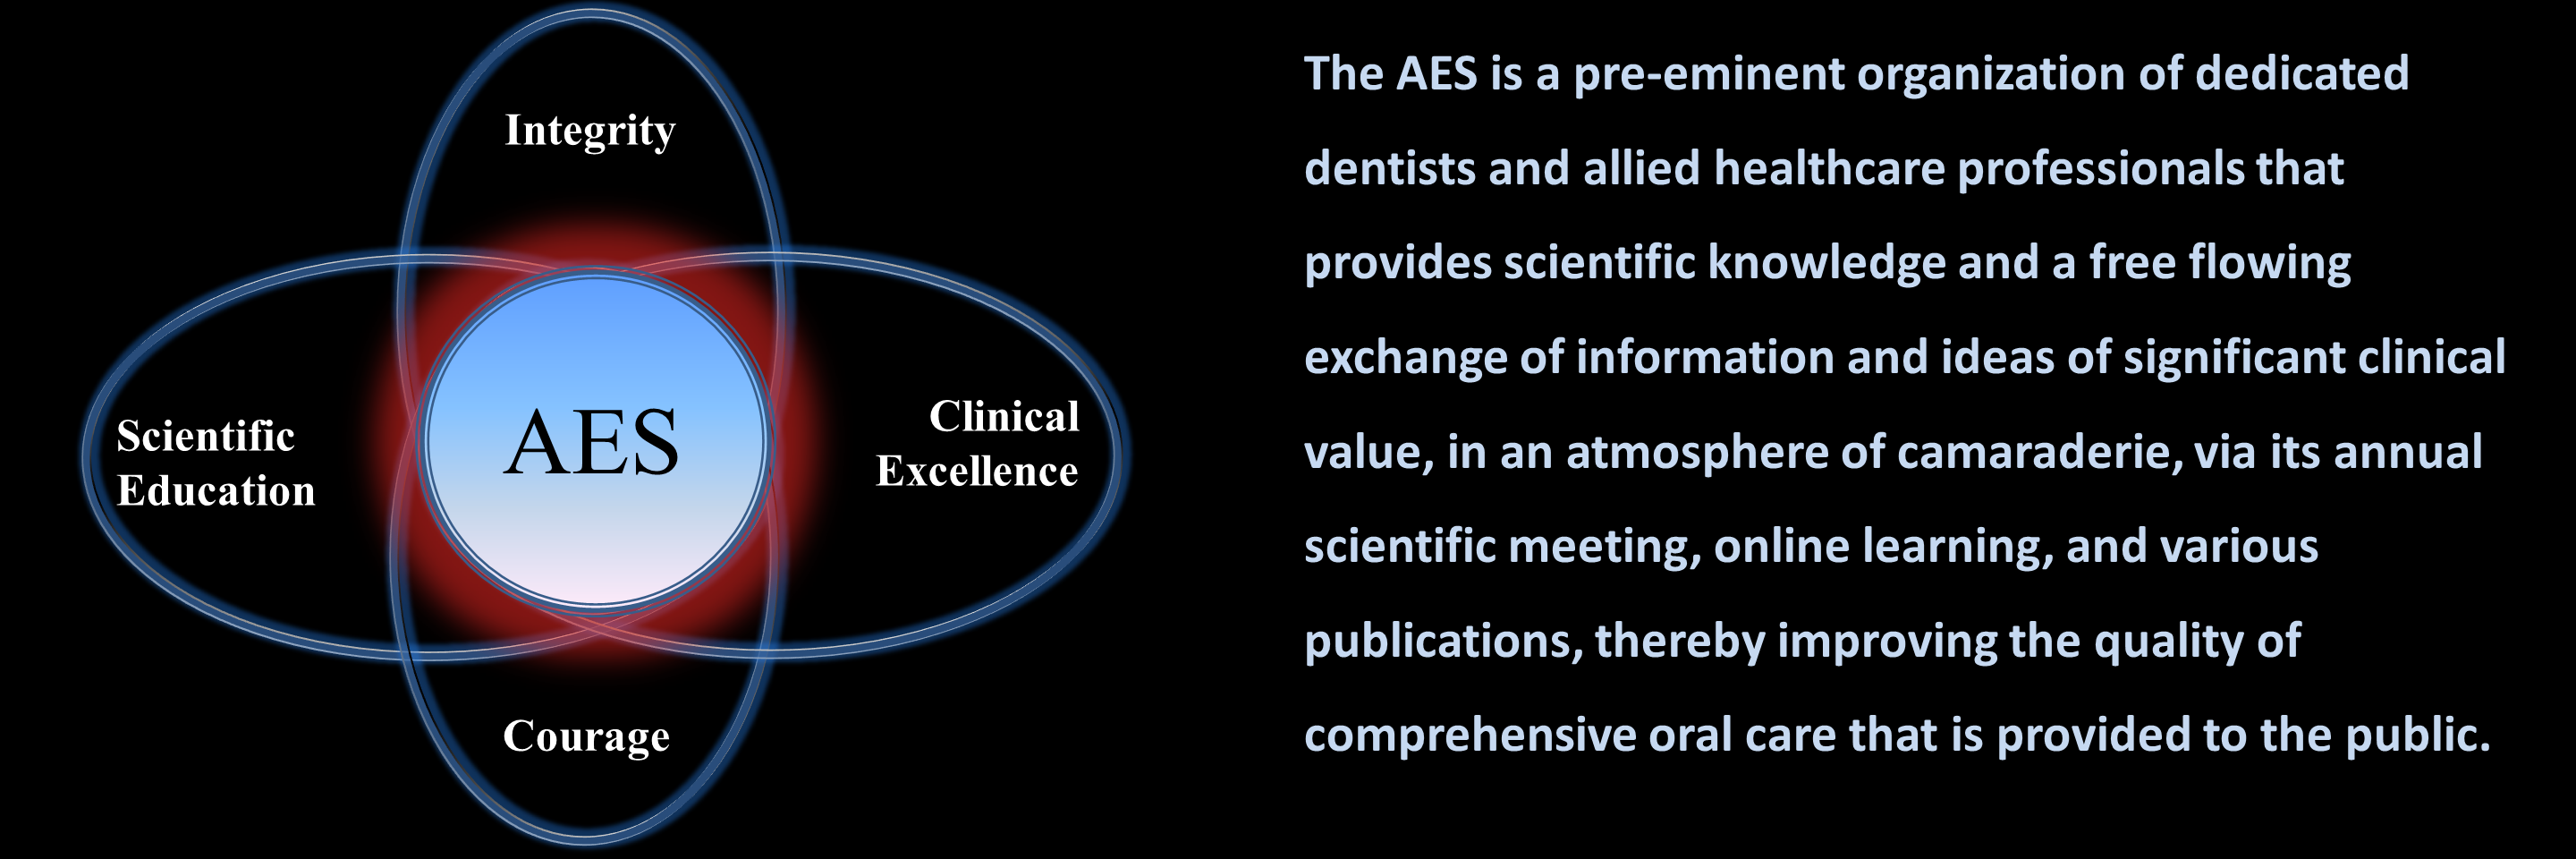 AES Mission & core Values